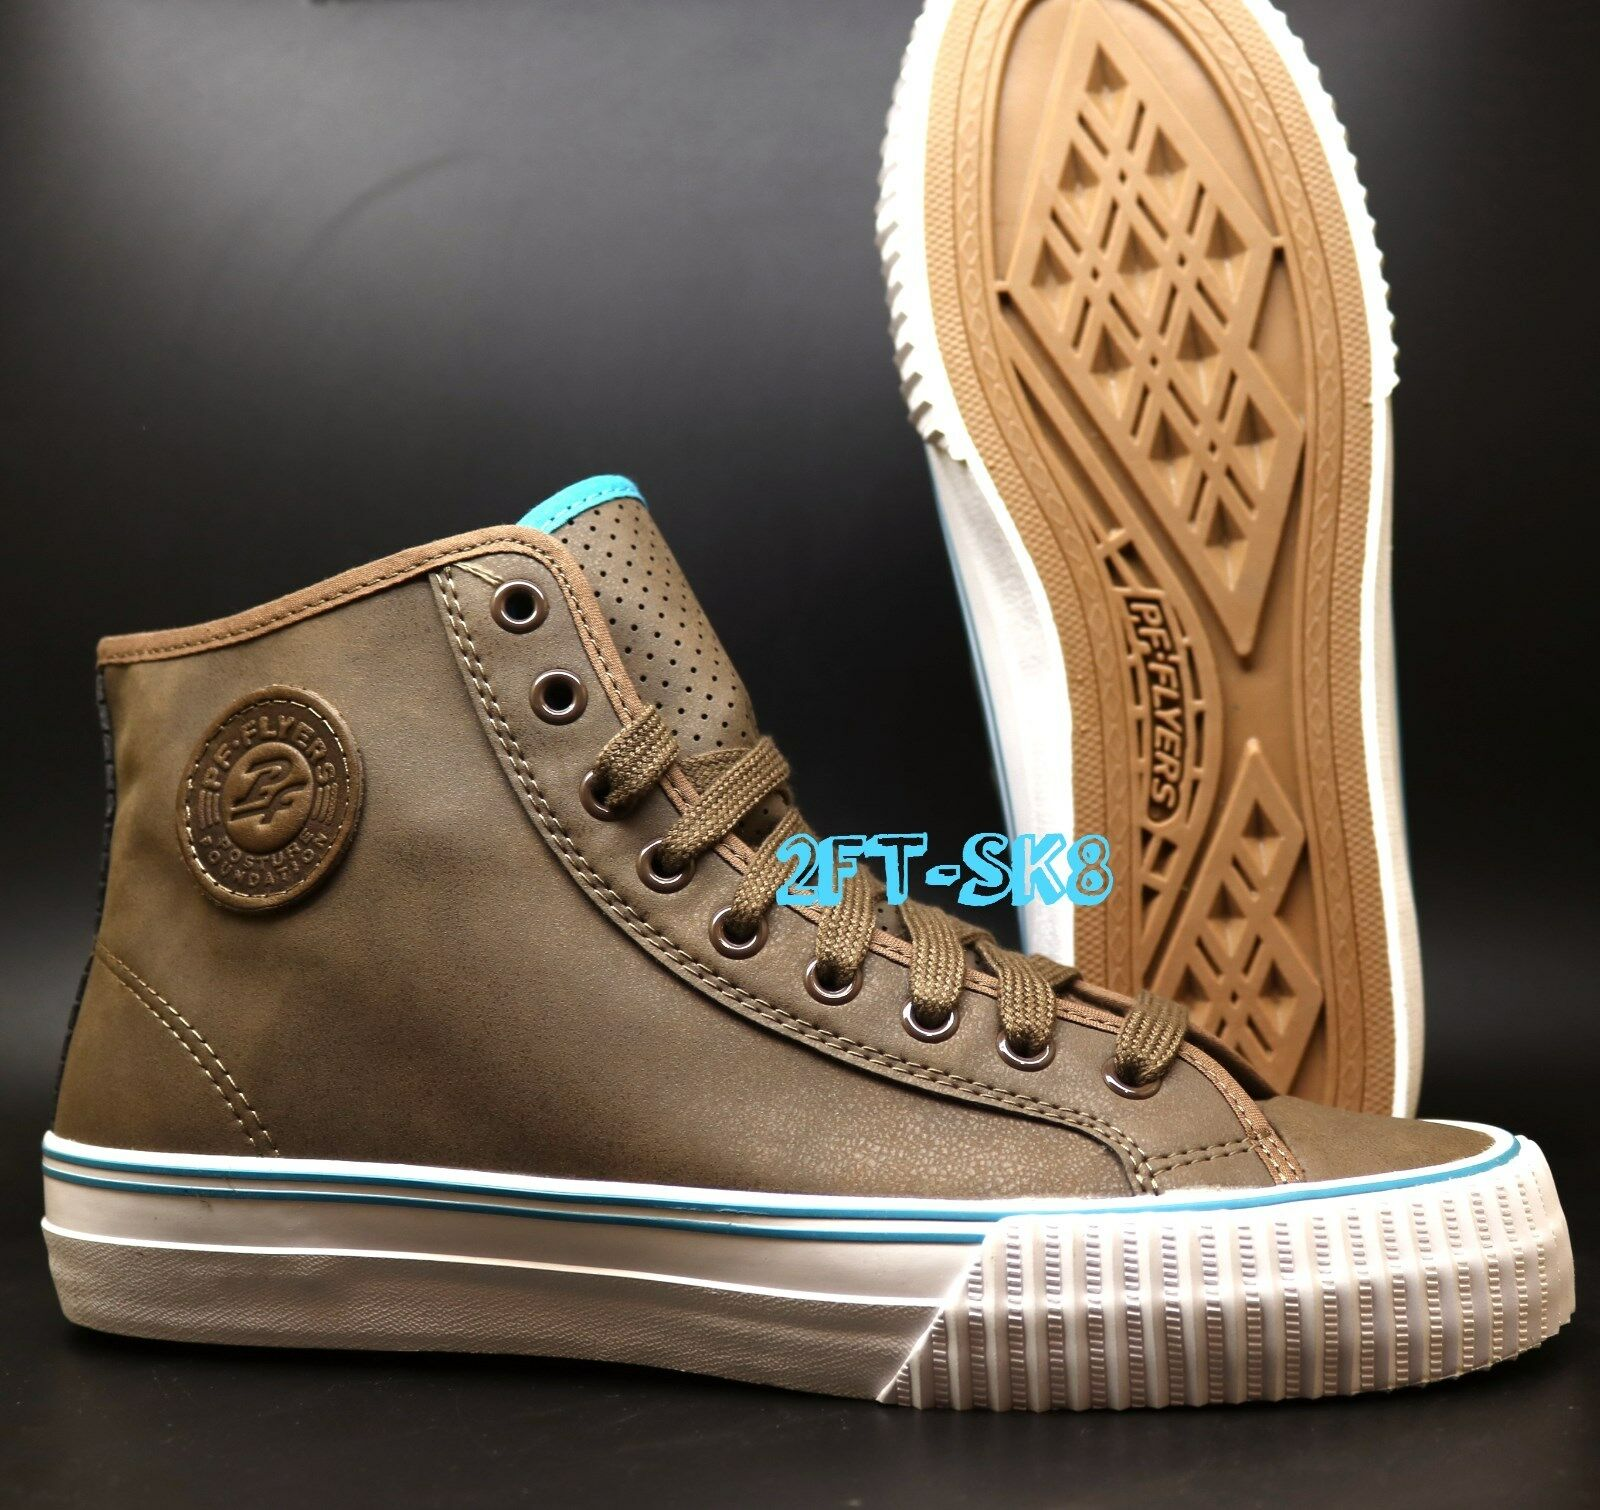 PF FLYERS CENTER HI BROWN PABBLE HIGH SYNTHETIC LEATHER  Herren HIGH PABBLE TOP Schuhe S8921.166 bb7e4d